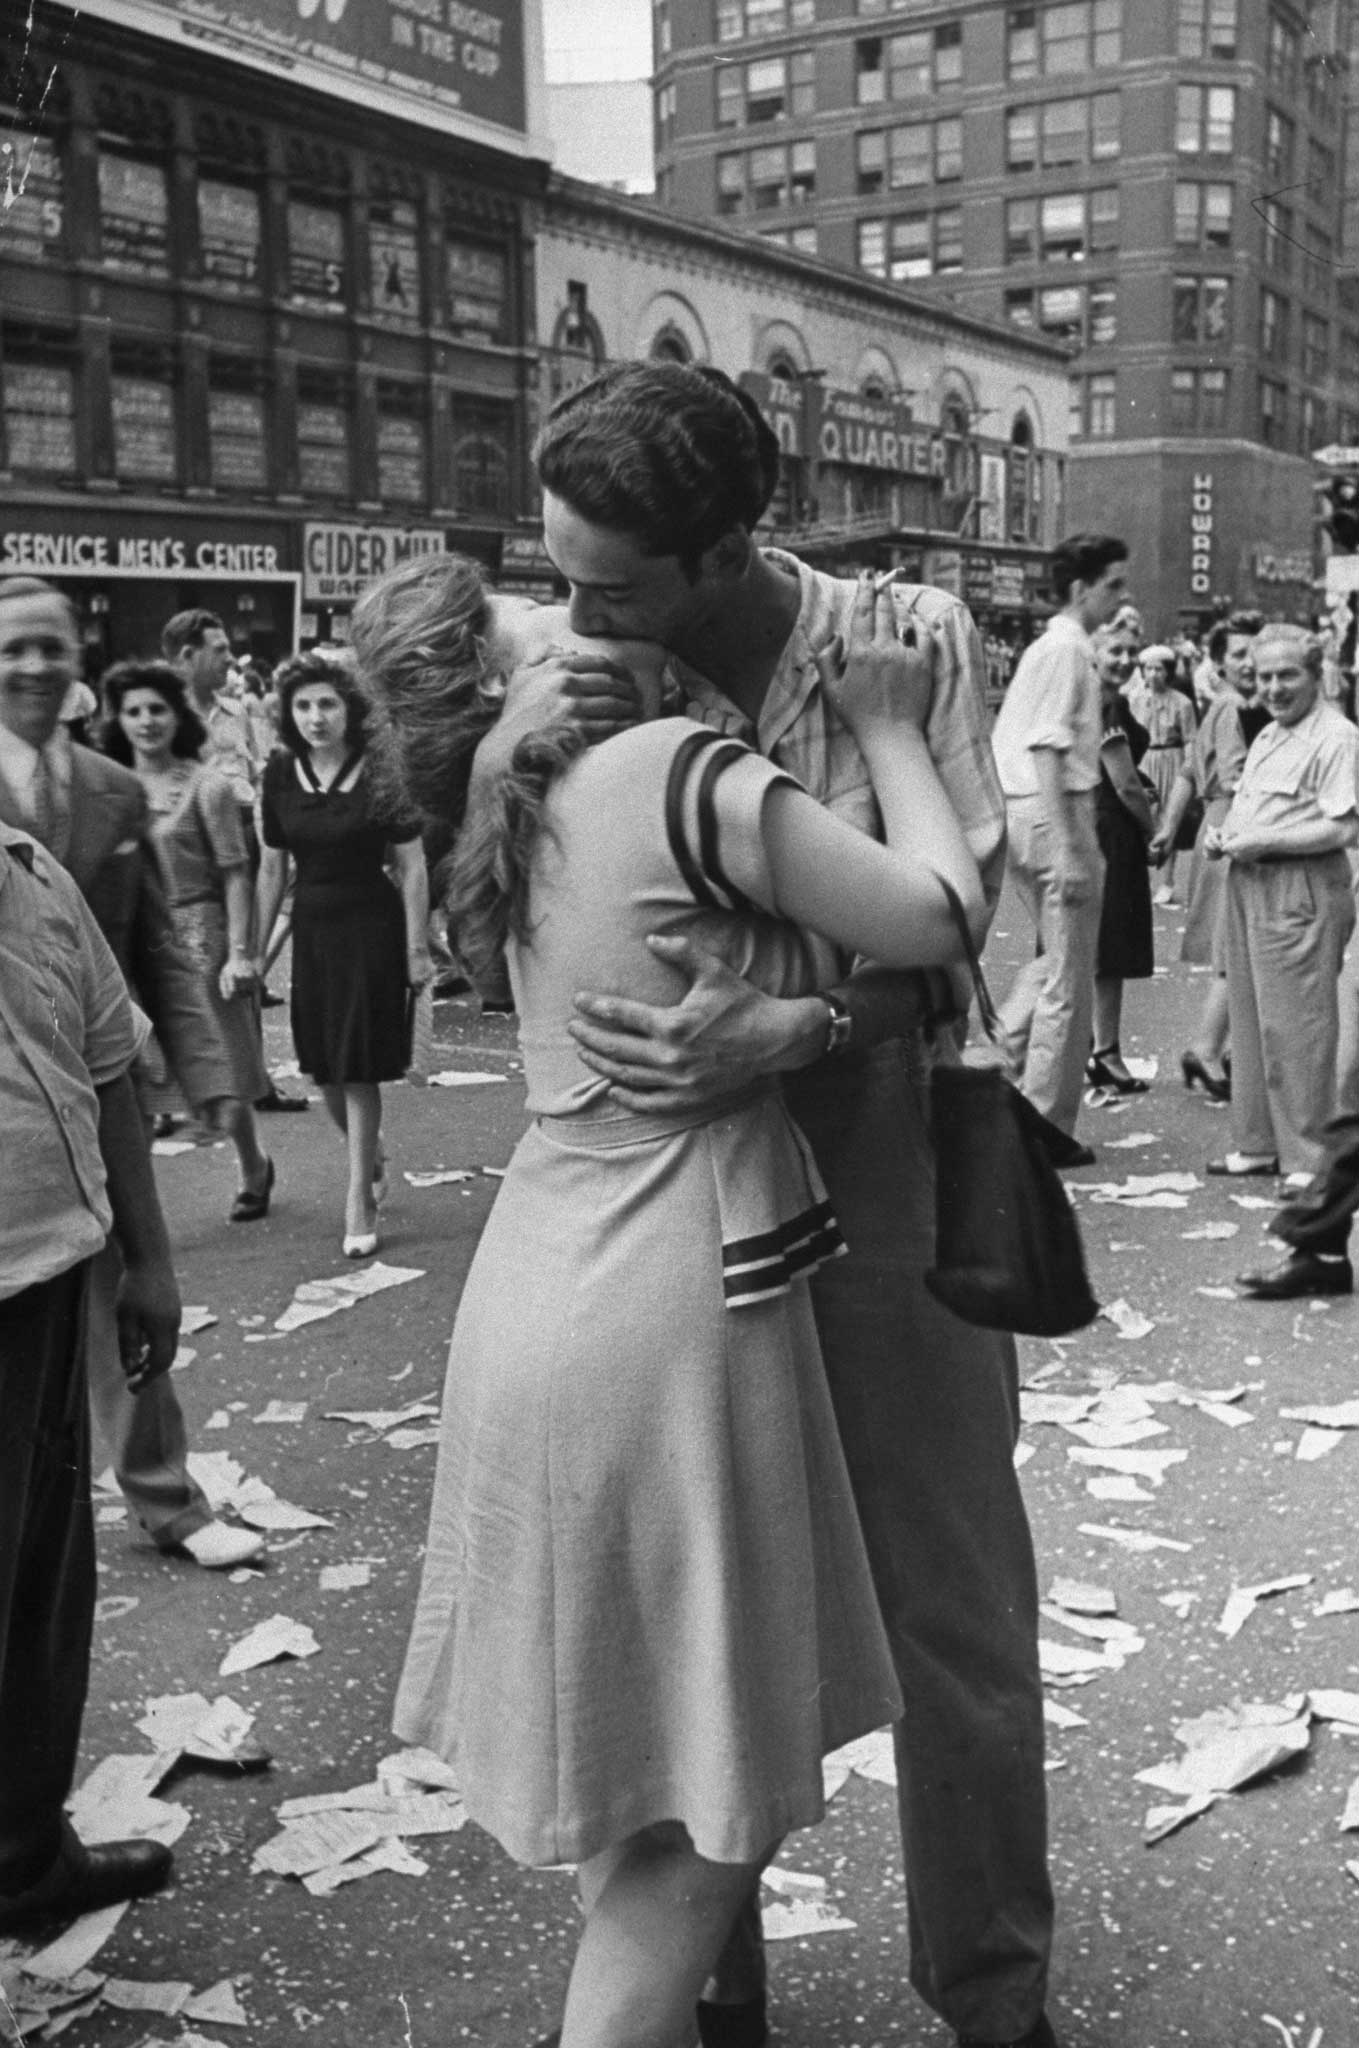 Not published in LIFE. Times Square, August 14, 1945 - V-J Day.